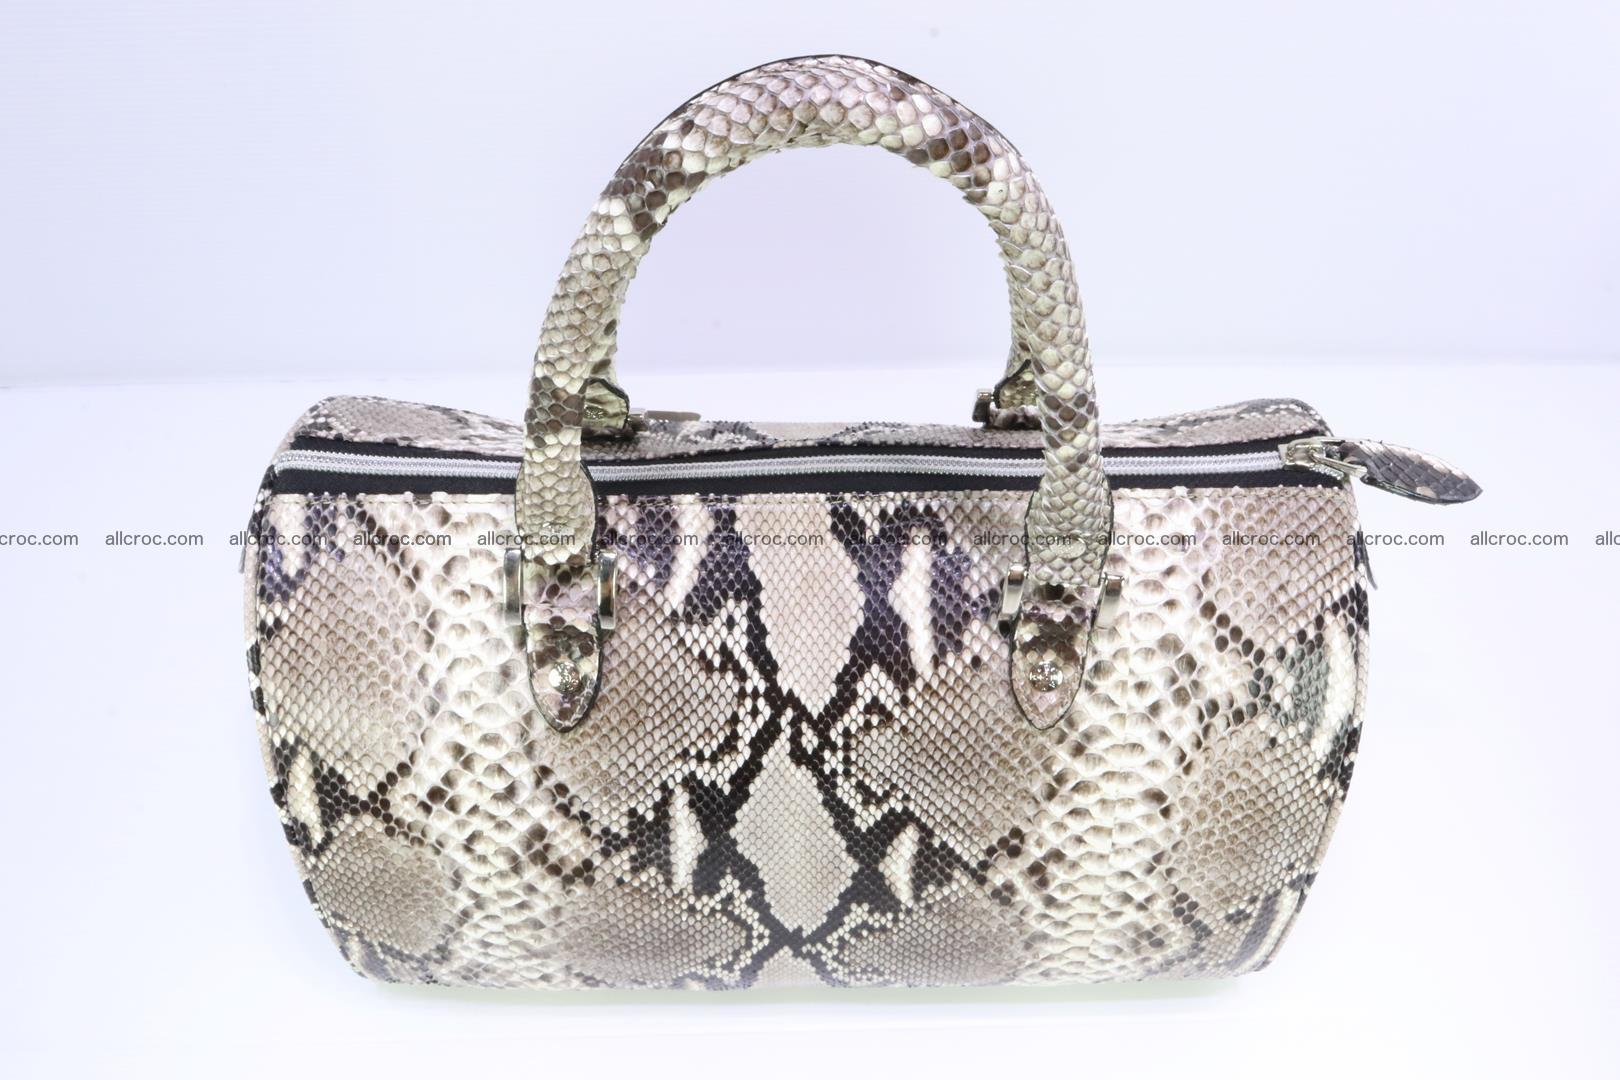 Ladies handbag, valise from genuine python skin 207 Foto 4